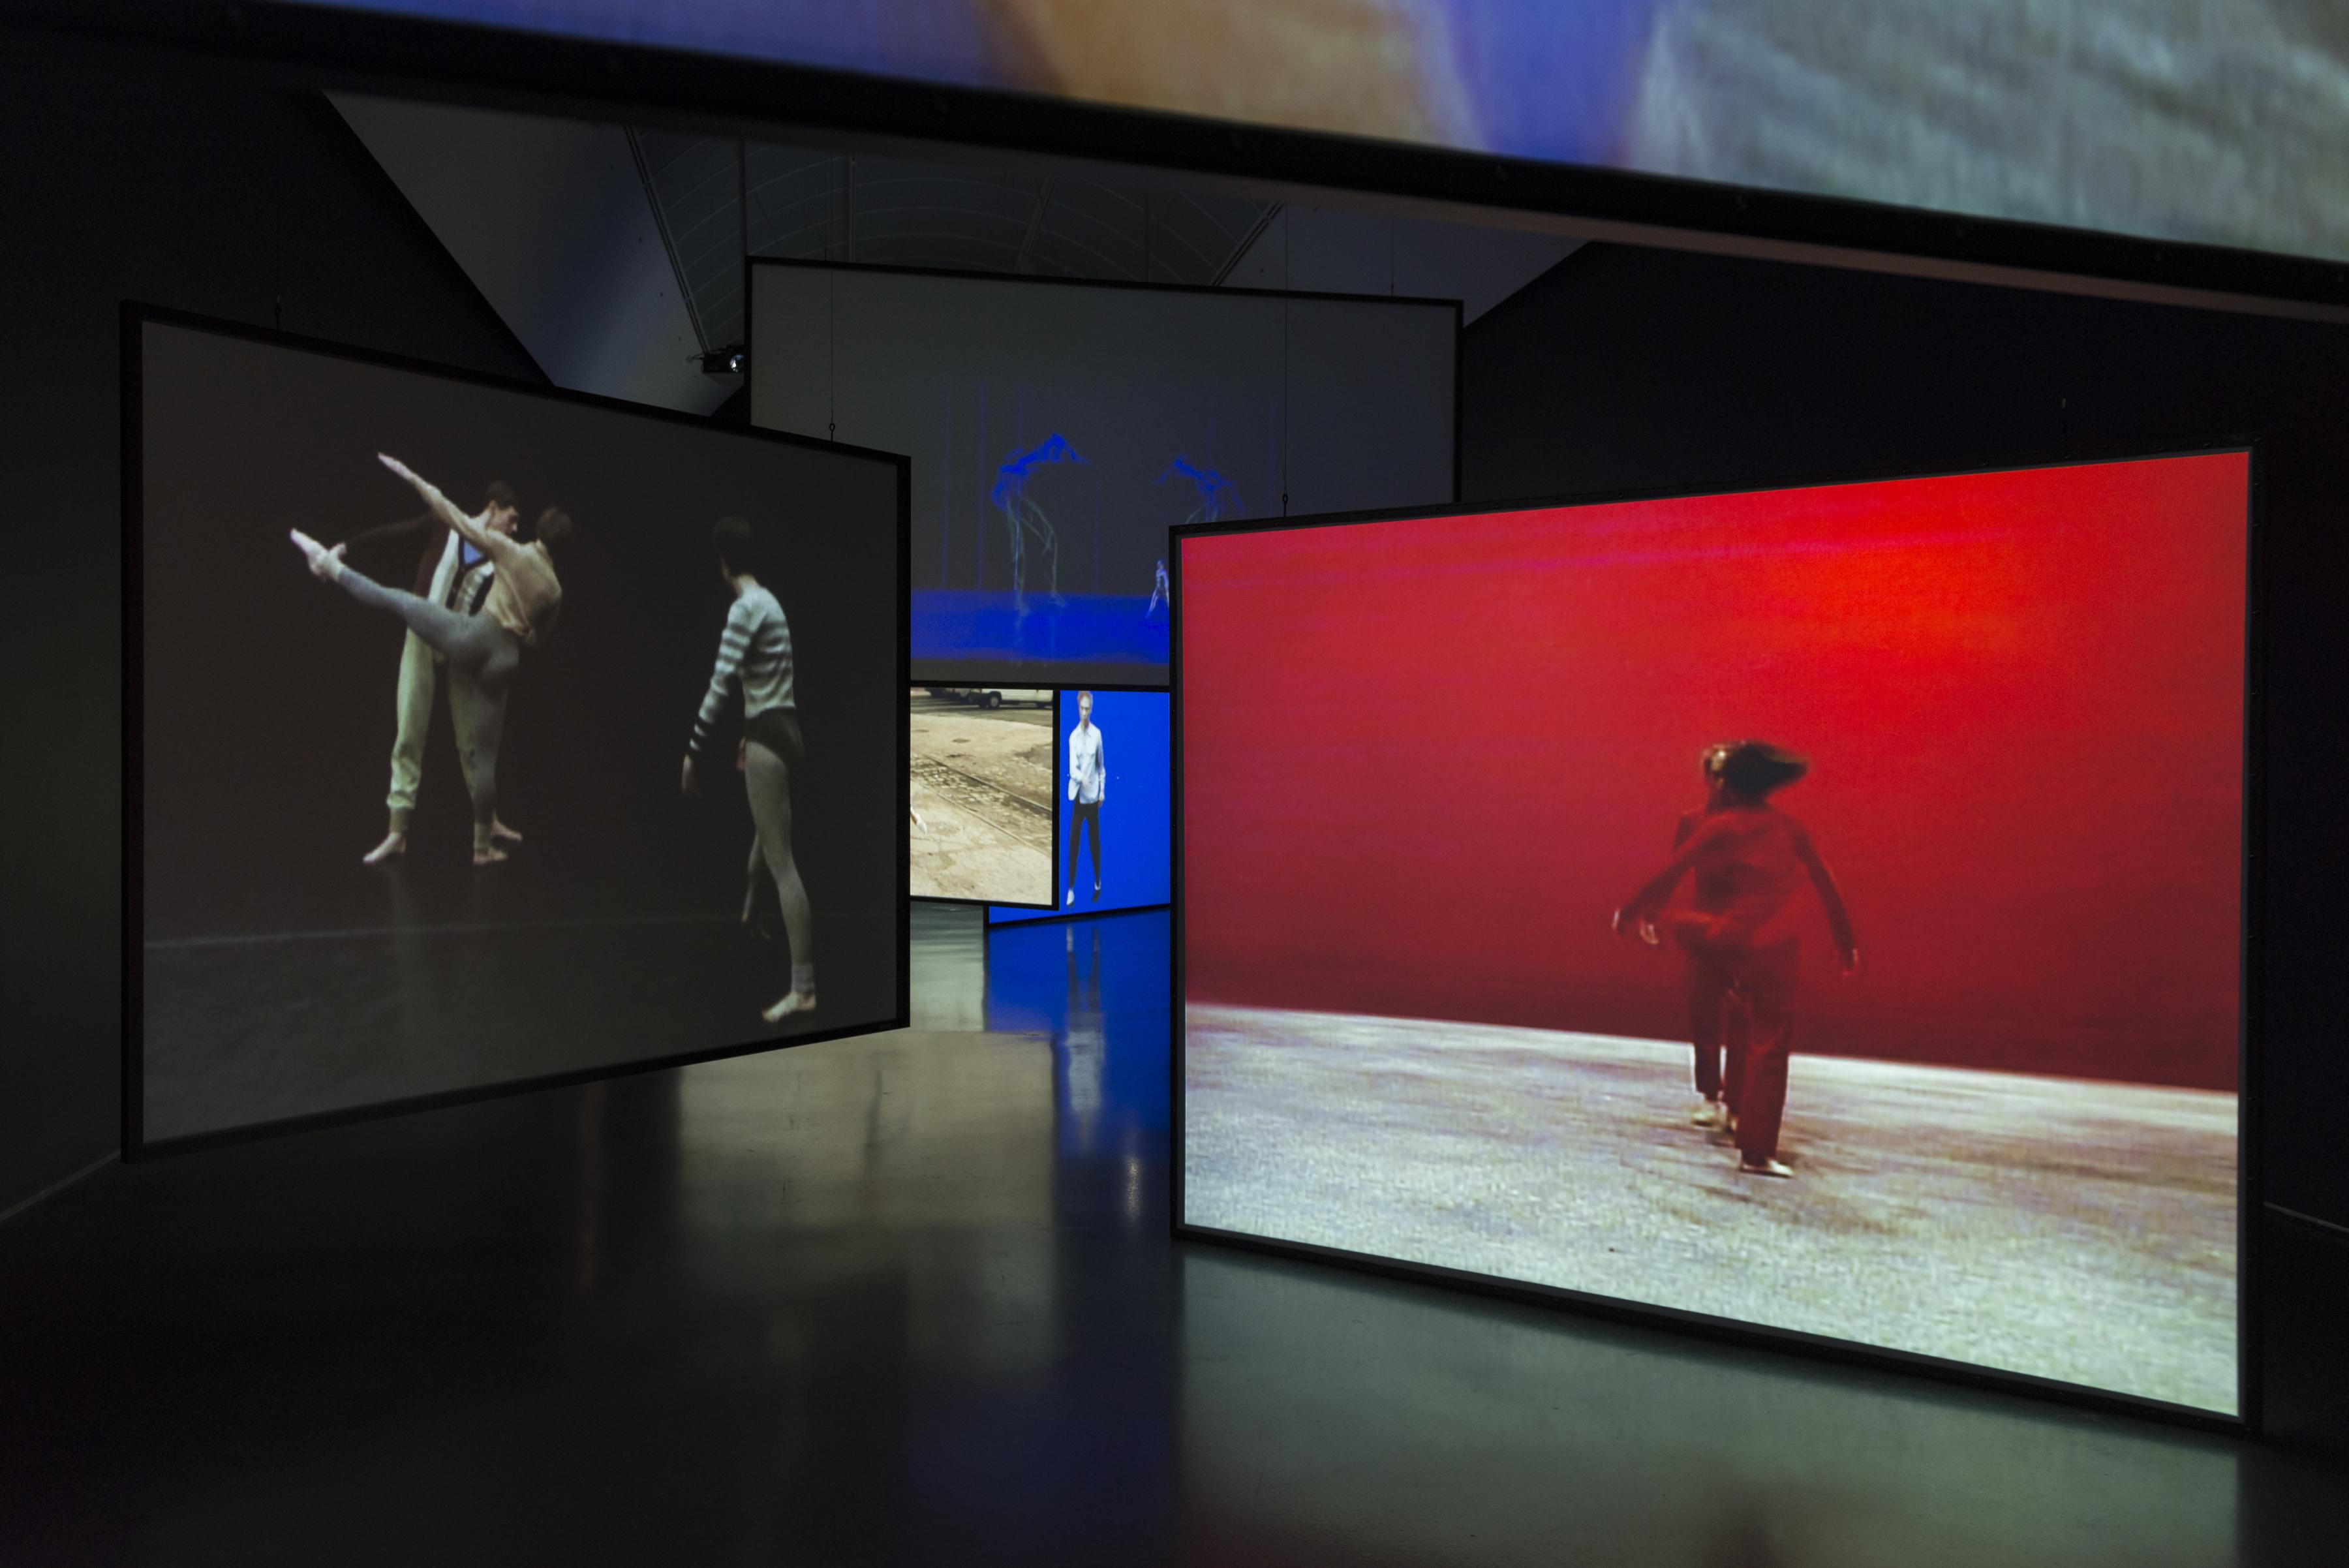 Large projection screens hung at various heights and angles fill the dimly lit gallery. Videos projected on the screens show dancers in different performances and configurations.